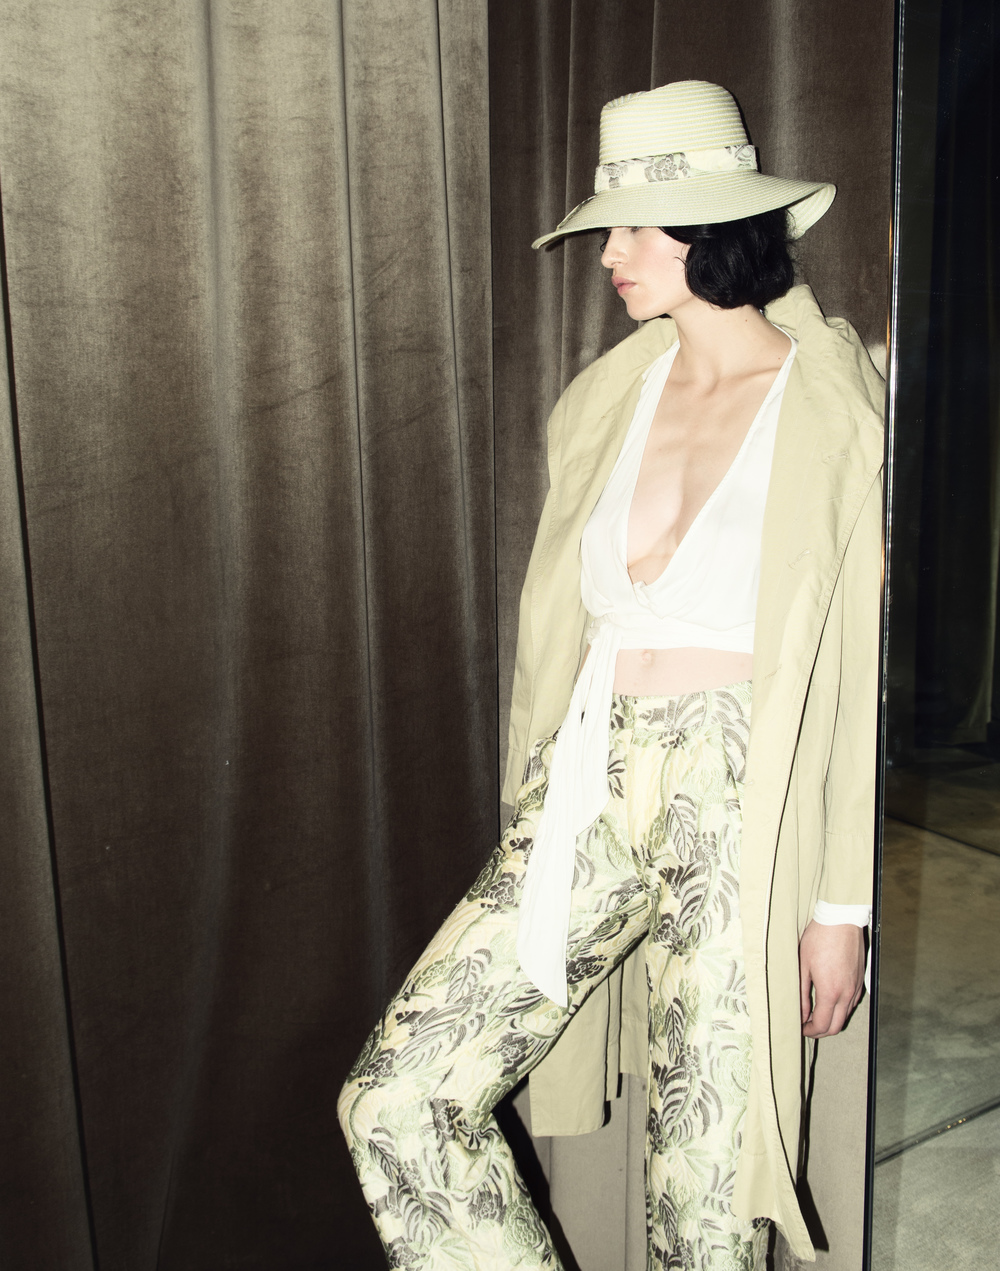 Pants   Baja East   $1295 | Blouse   Bec & Bridge   $180   Jacket   Etoile by  Isabel Marant   $540 | Hat   Baja East   $495